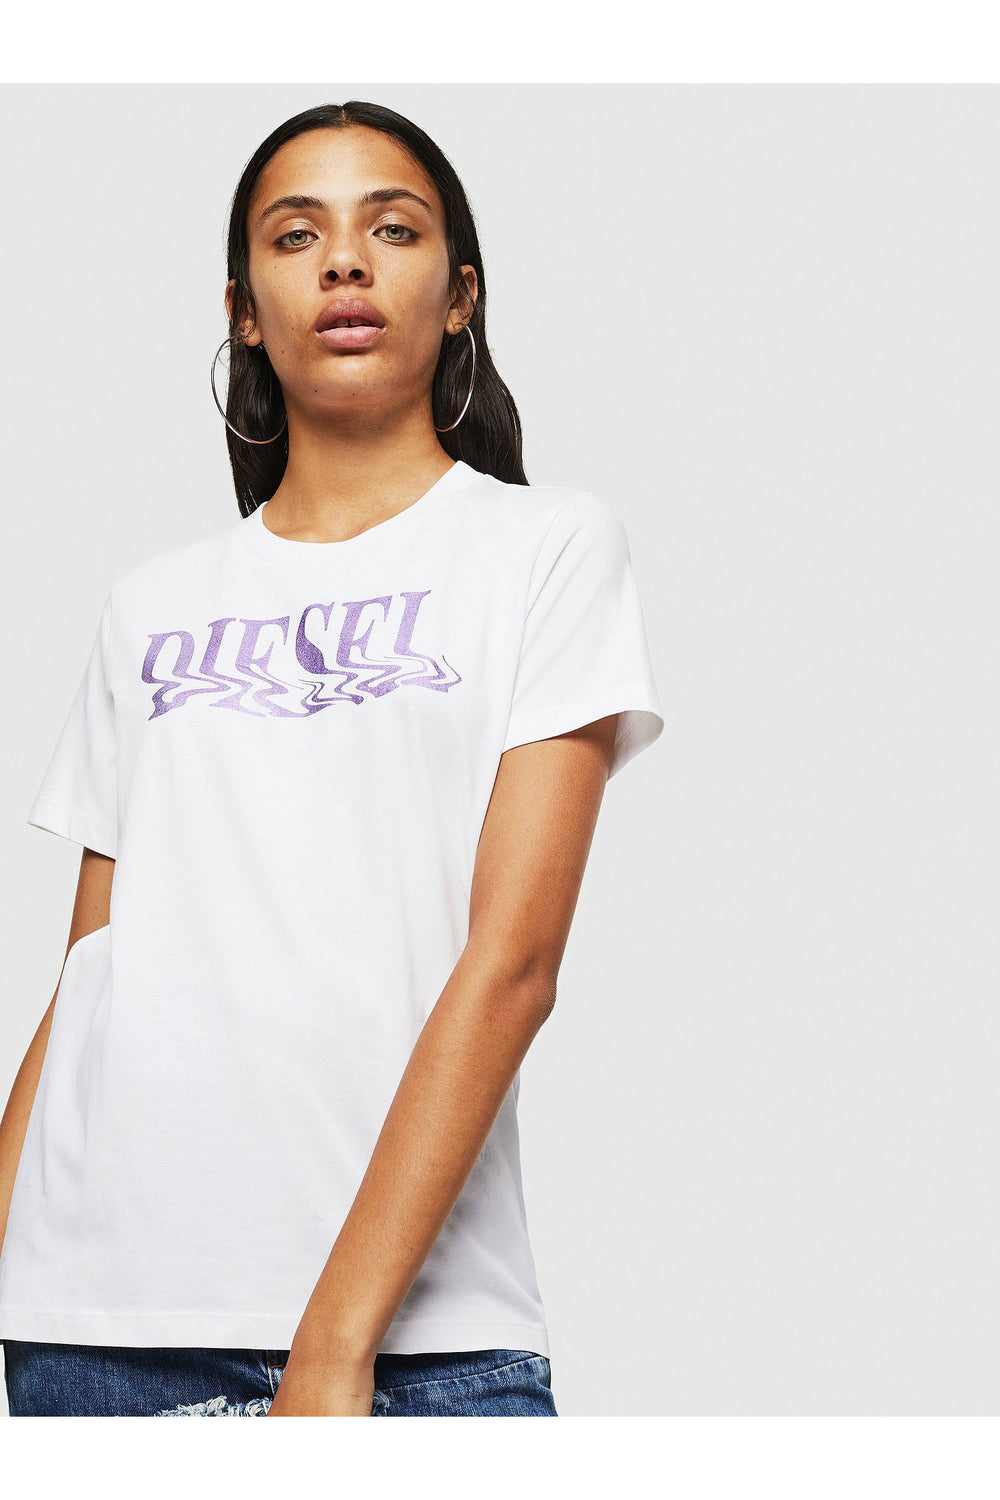 Diesel Sily T-Shirt - White/Purple